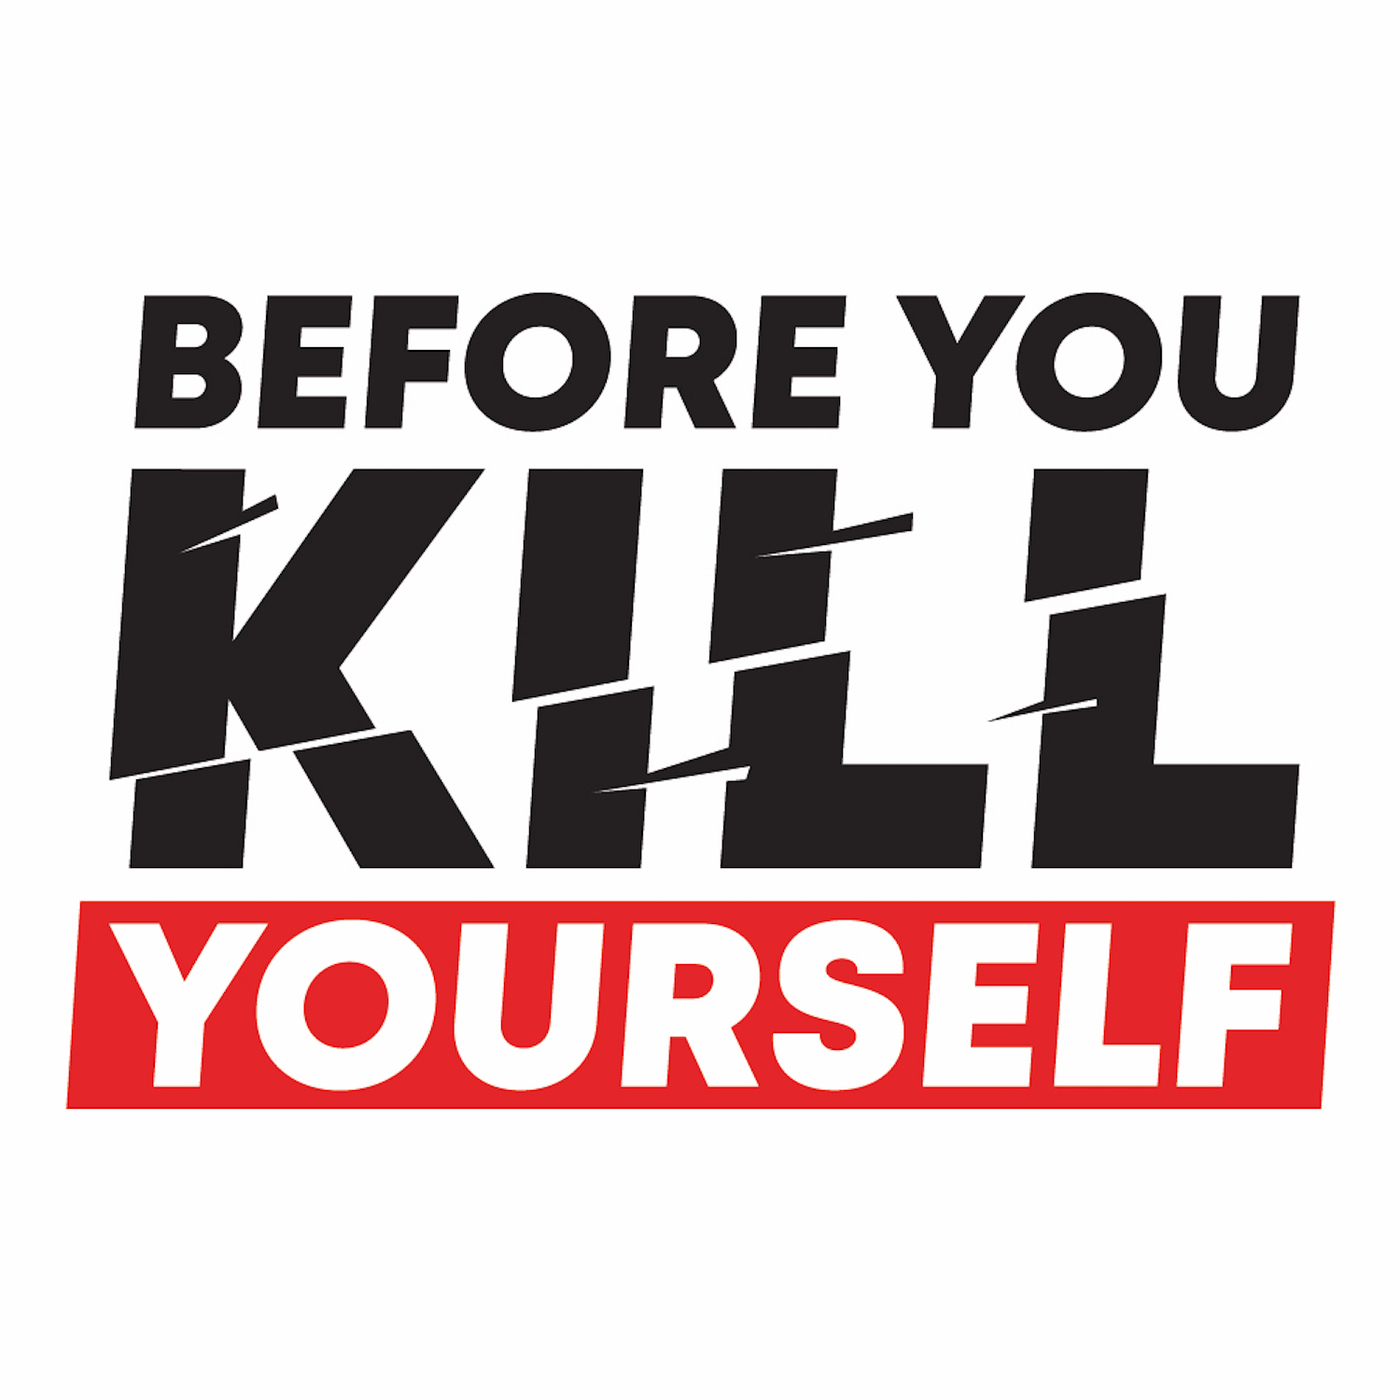 Without kill ways to pain yourself Easiest/Painless way